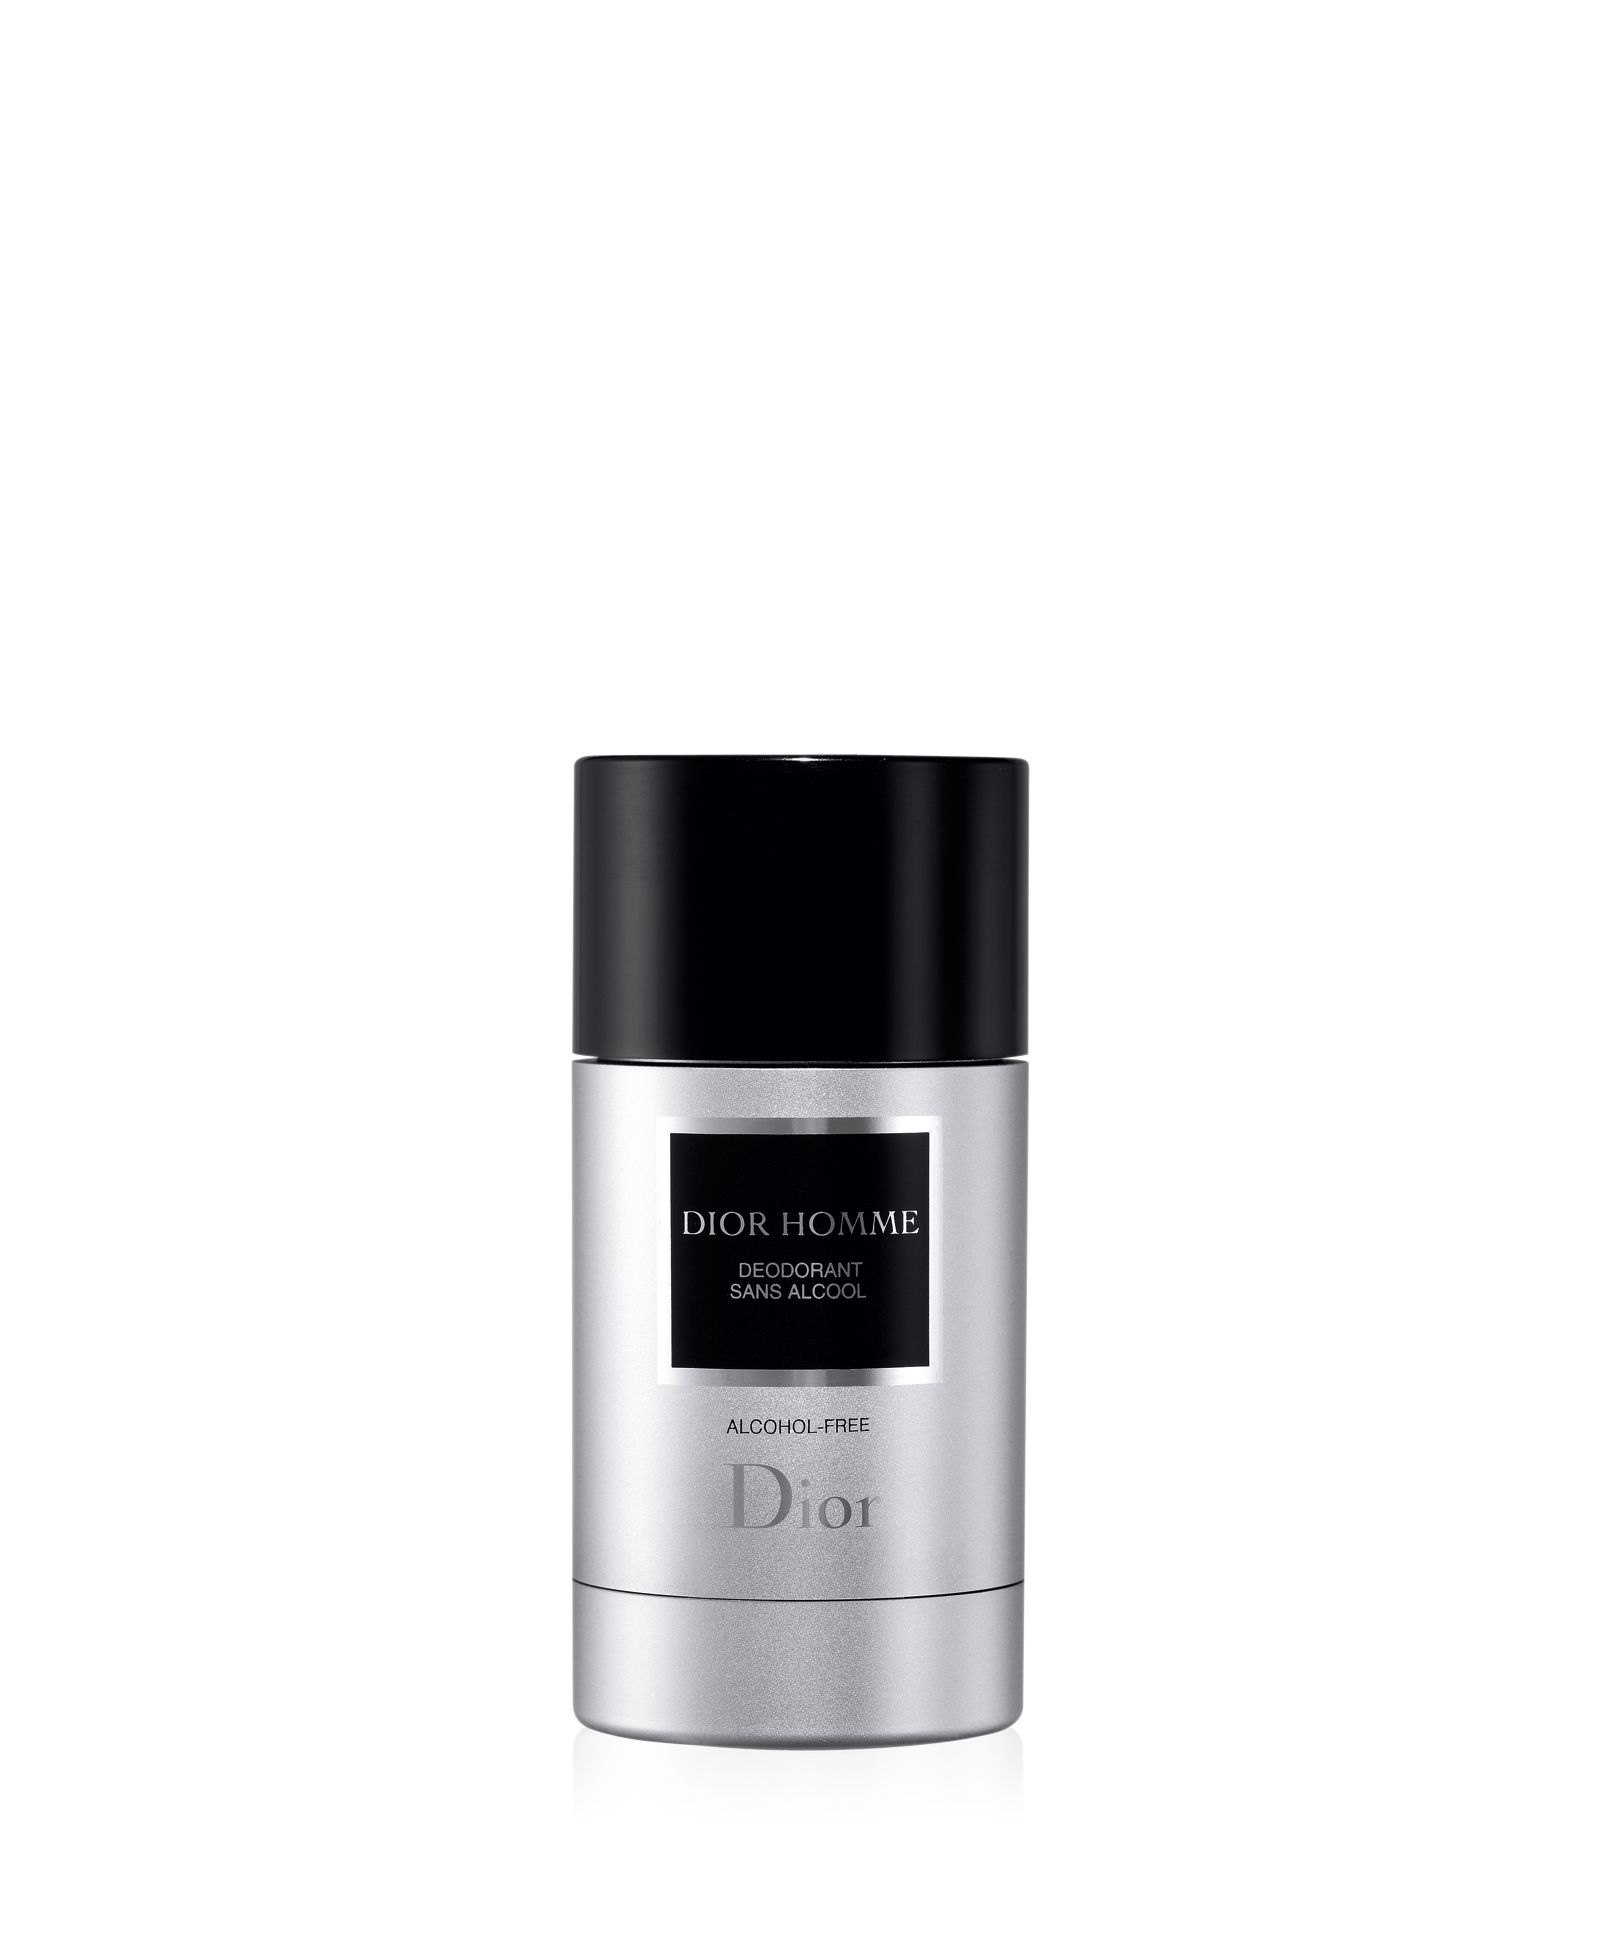 Dior Homme Alcohol-Free Stick Deodorant 75ml